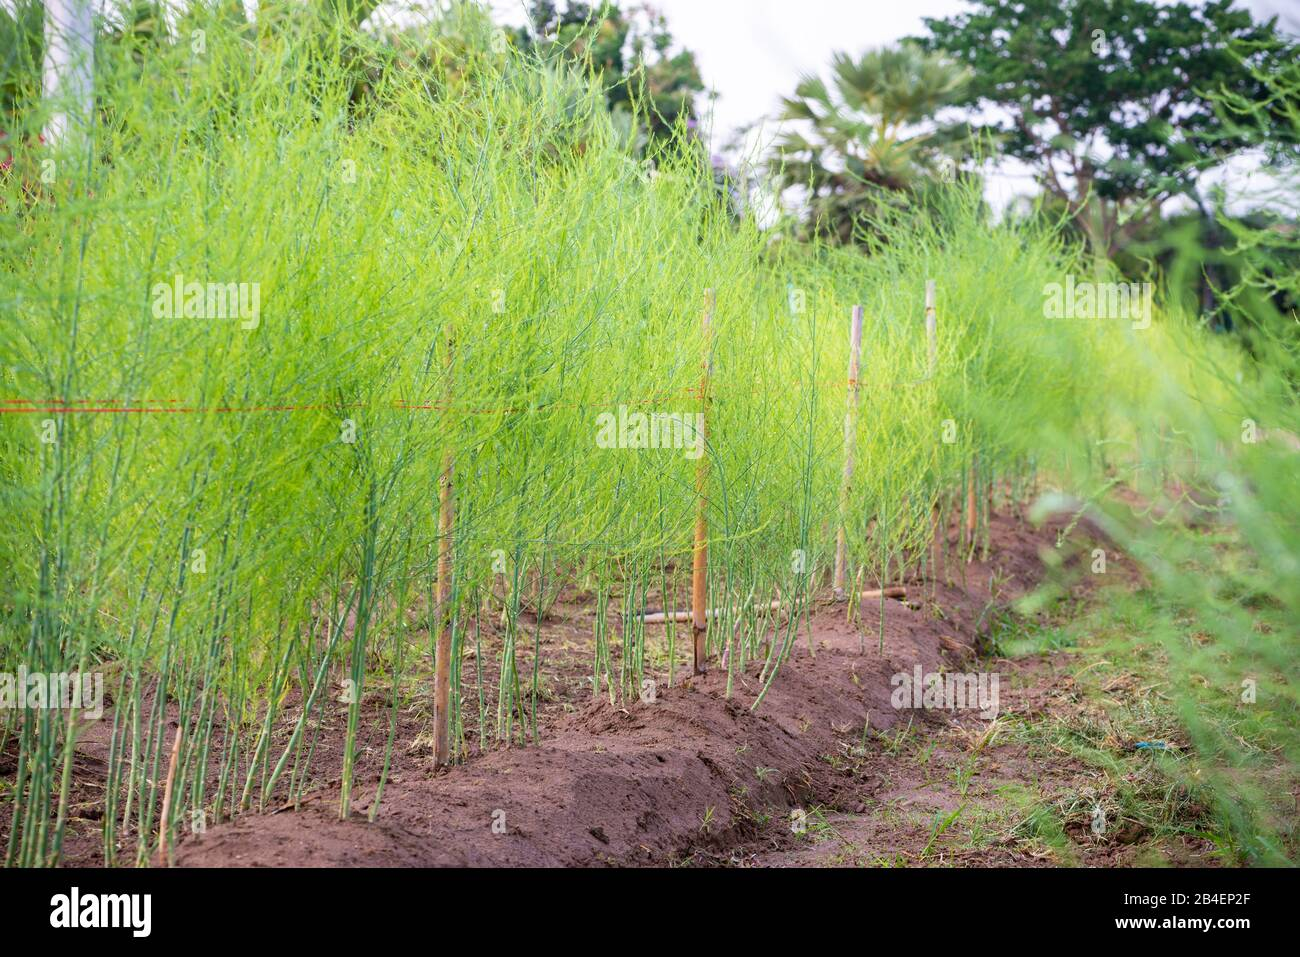 Plant With Small Green Leaves Of Edible Asparagus Garden Asparagus Or Asparagus Officinalis Are Growing In The Field Planting Vegetables And Agricul Stock Photo Alamy